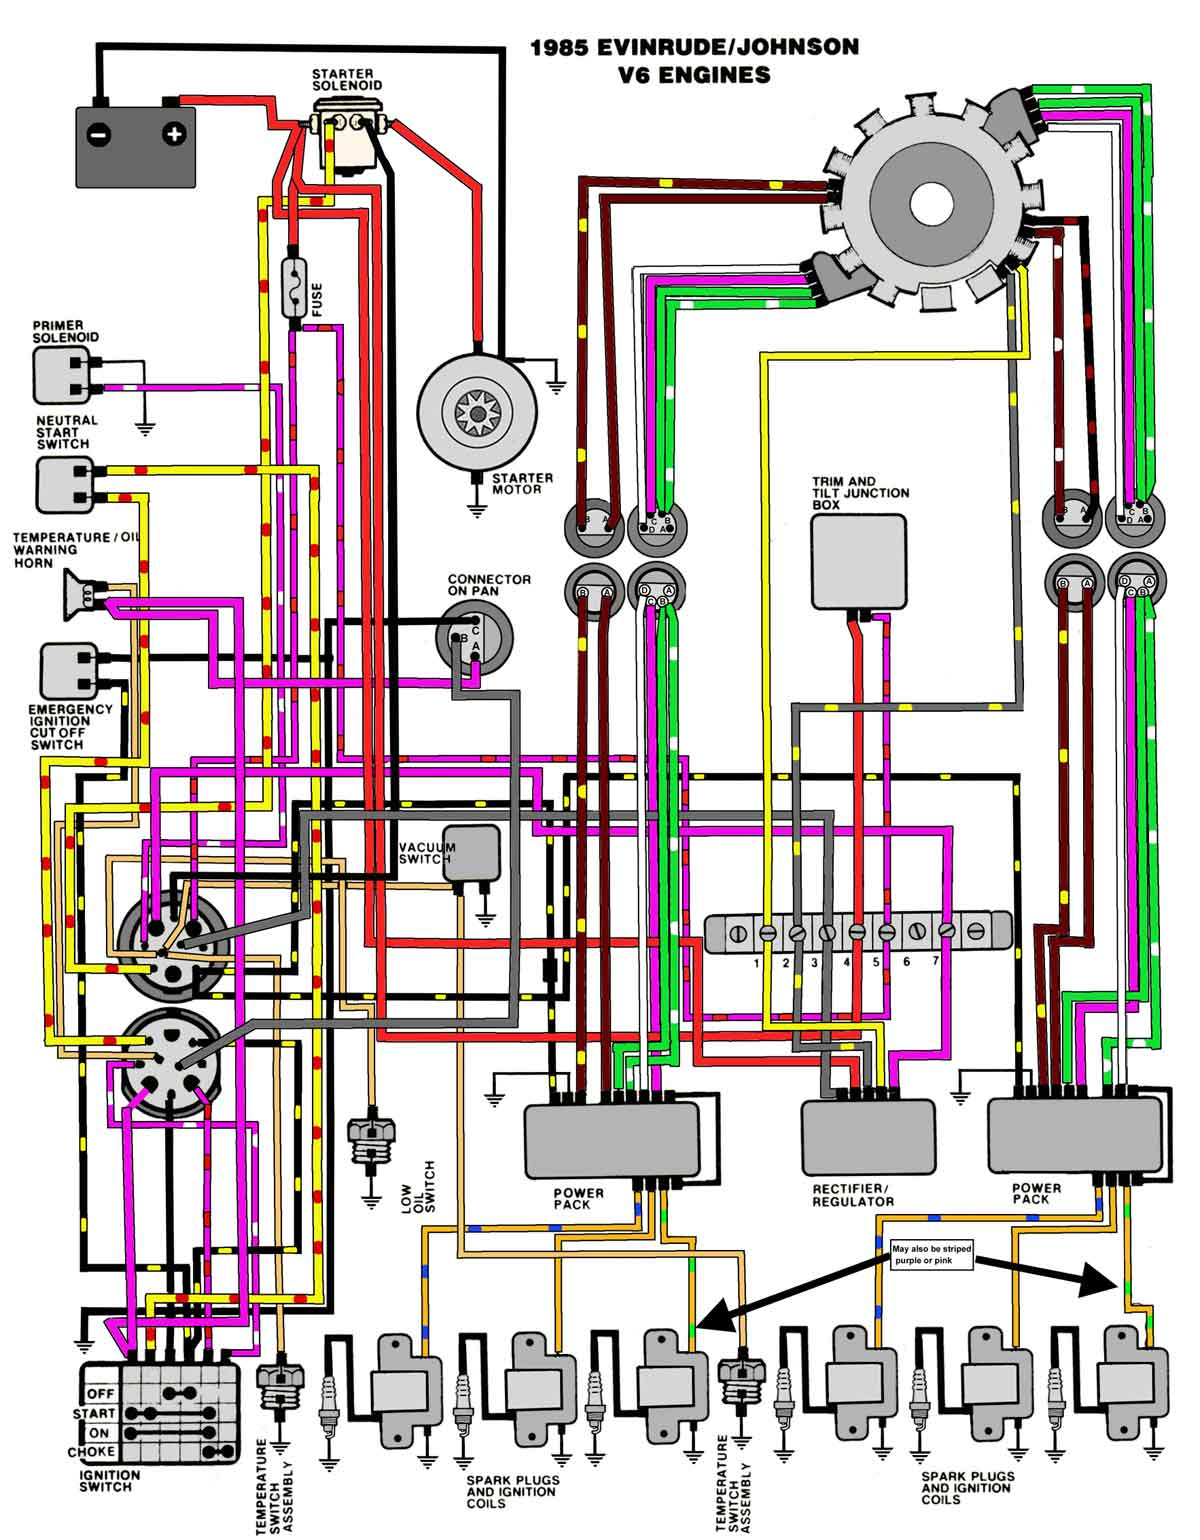 Wiring Schematic Omc Ignition 25 hp johnson outboard wiring ... on johnson outboard ignition switch wiring, johnson outboard manual pdf, johnson outboard 150 wiring diagram, johnson seahorse 25 hp motor, johnson outboard motor wiring diagram, johnson wiring color codes, johnson 115 outboard schematic,